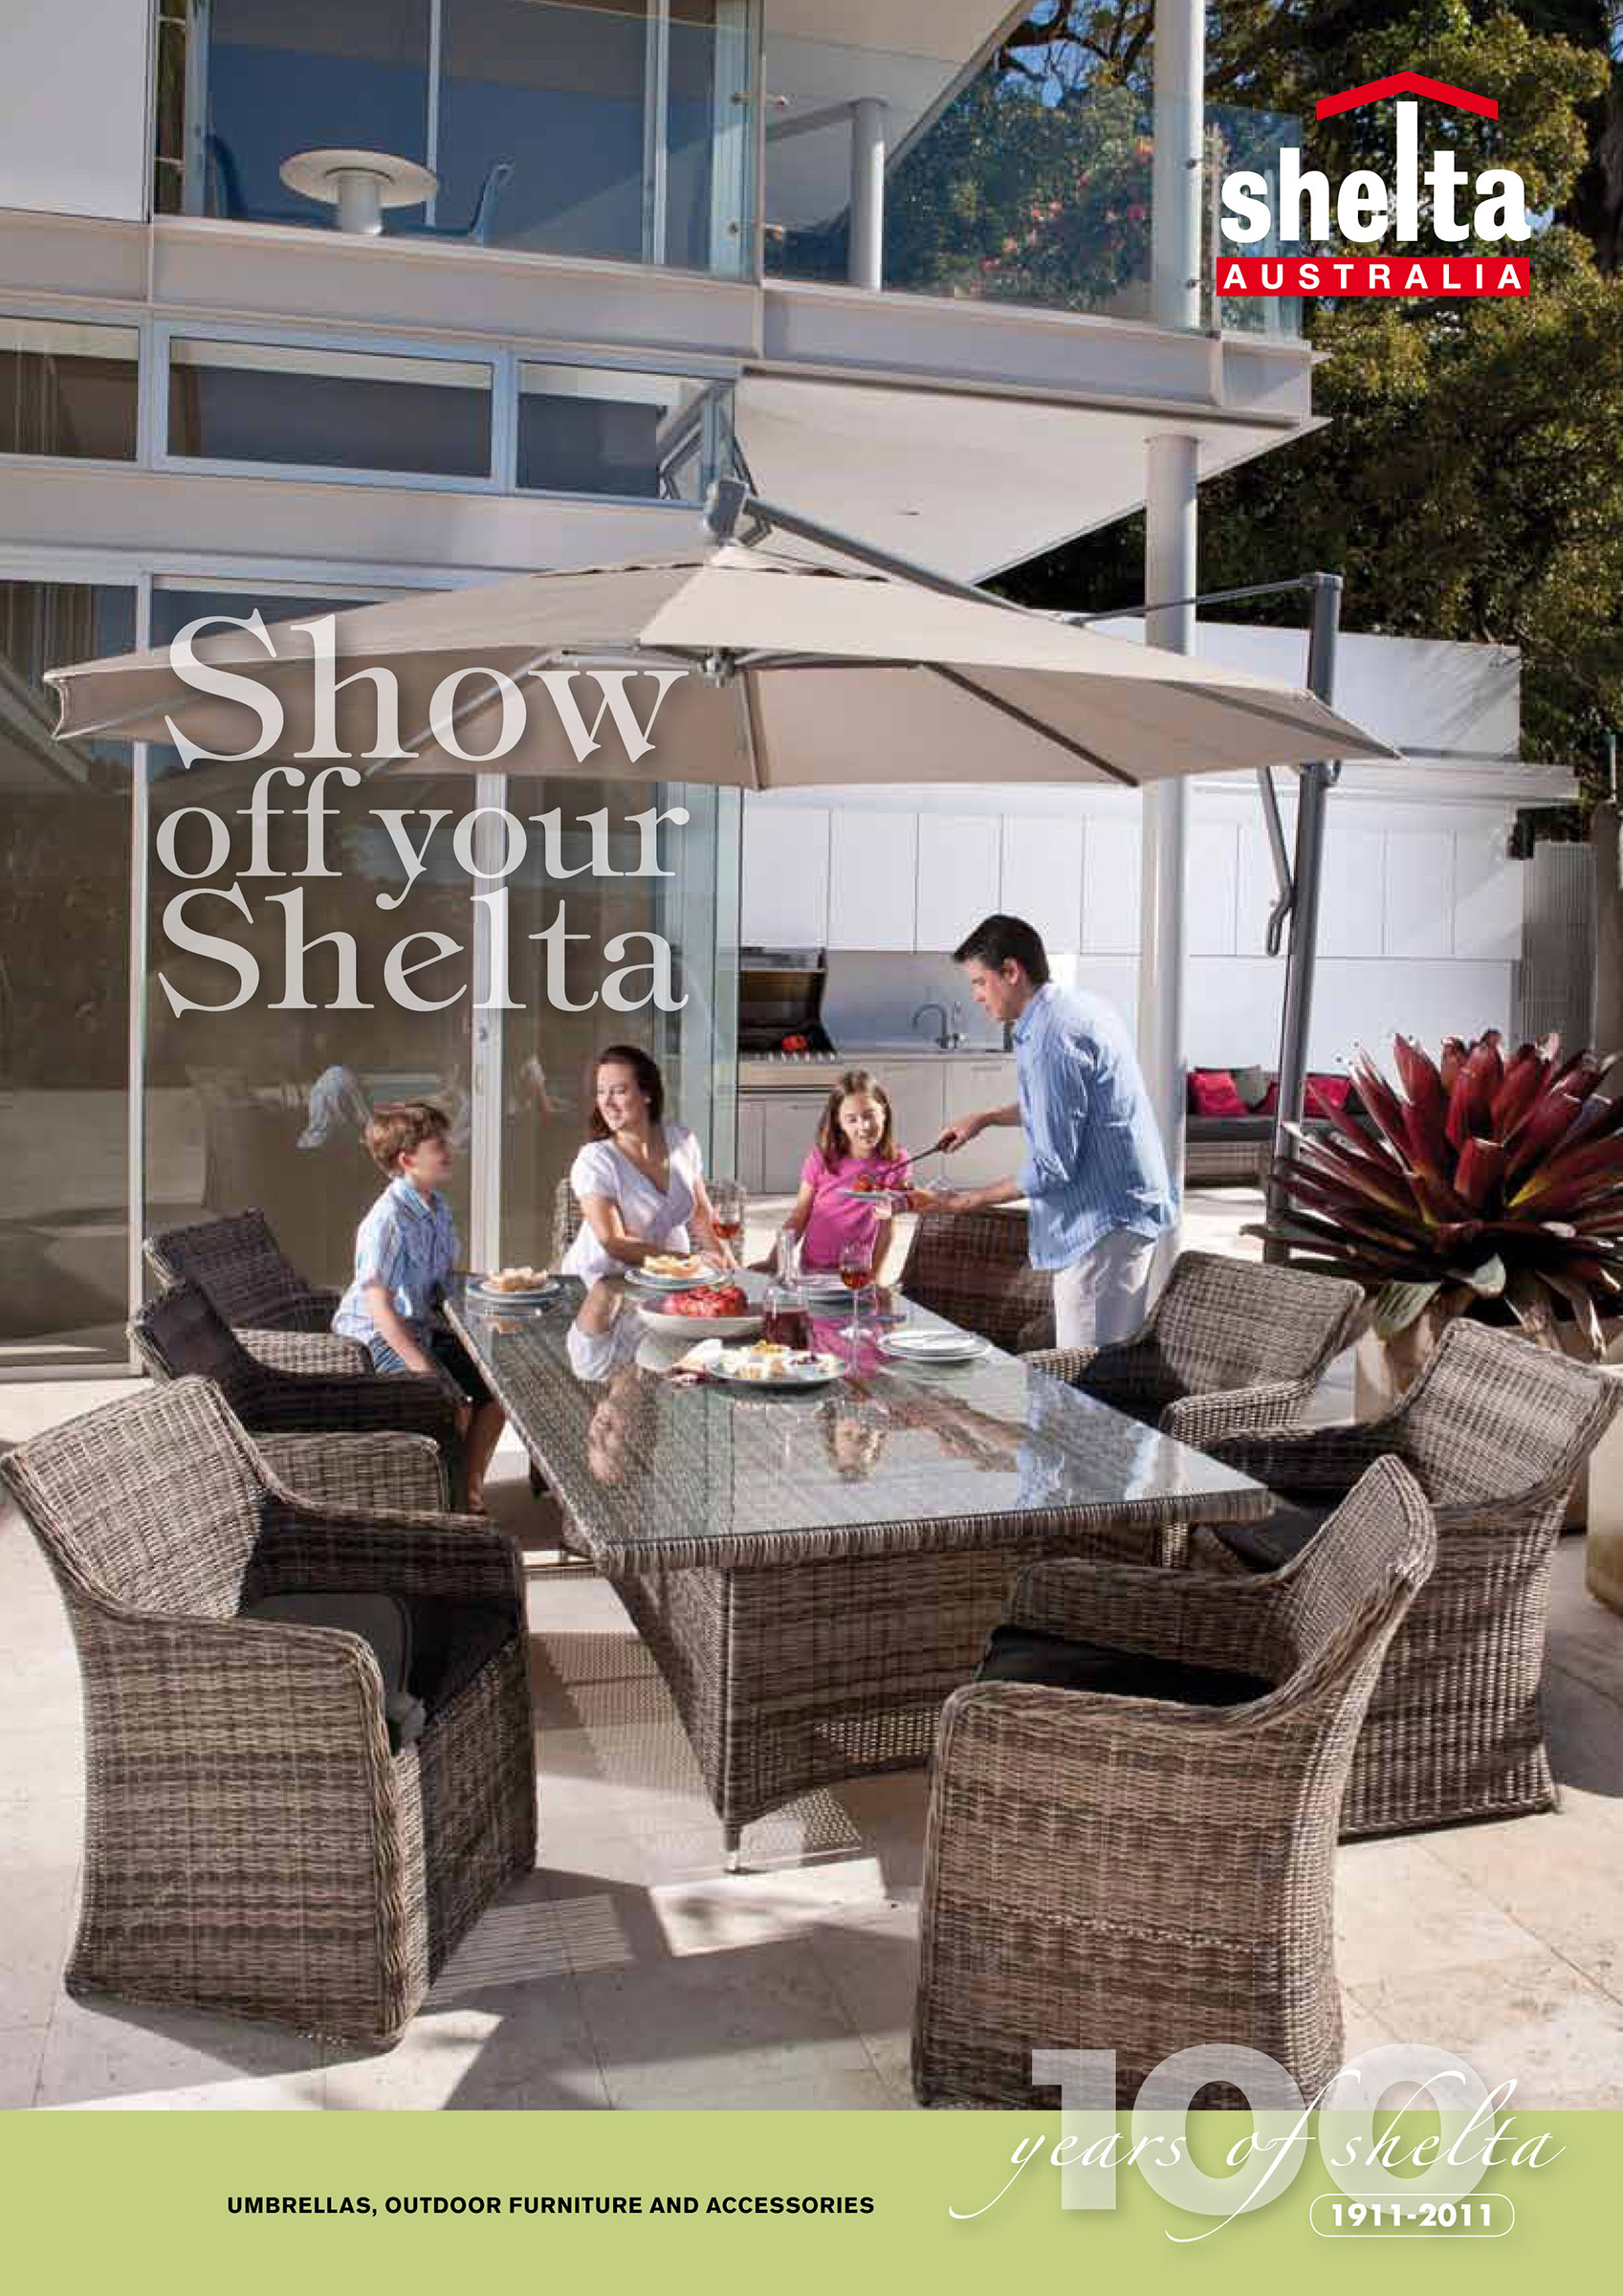 Advertising location photography for Shelta Australia with happy family having barbecue on patio outdoor furniture